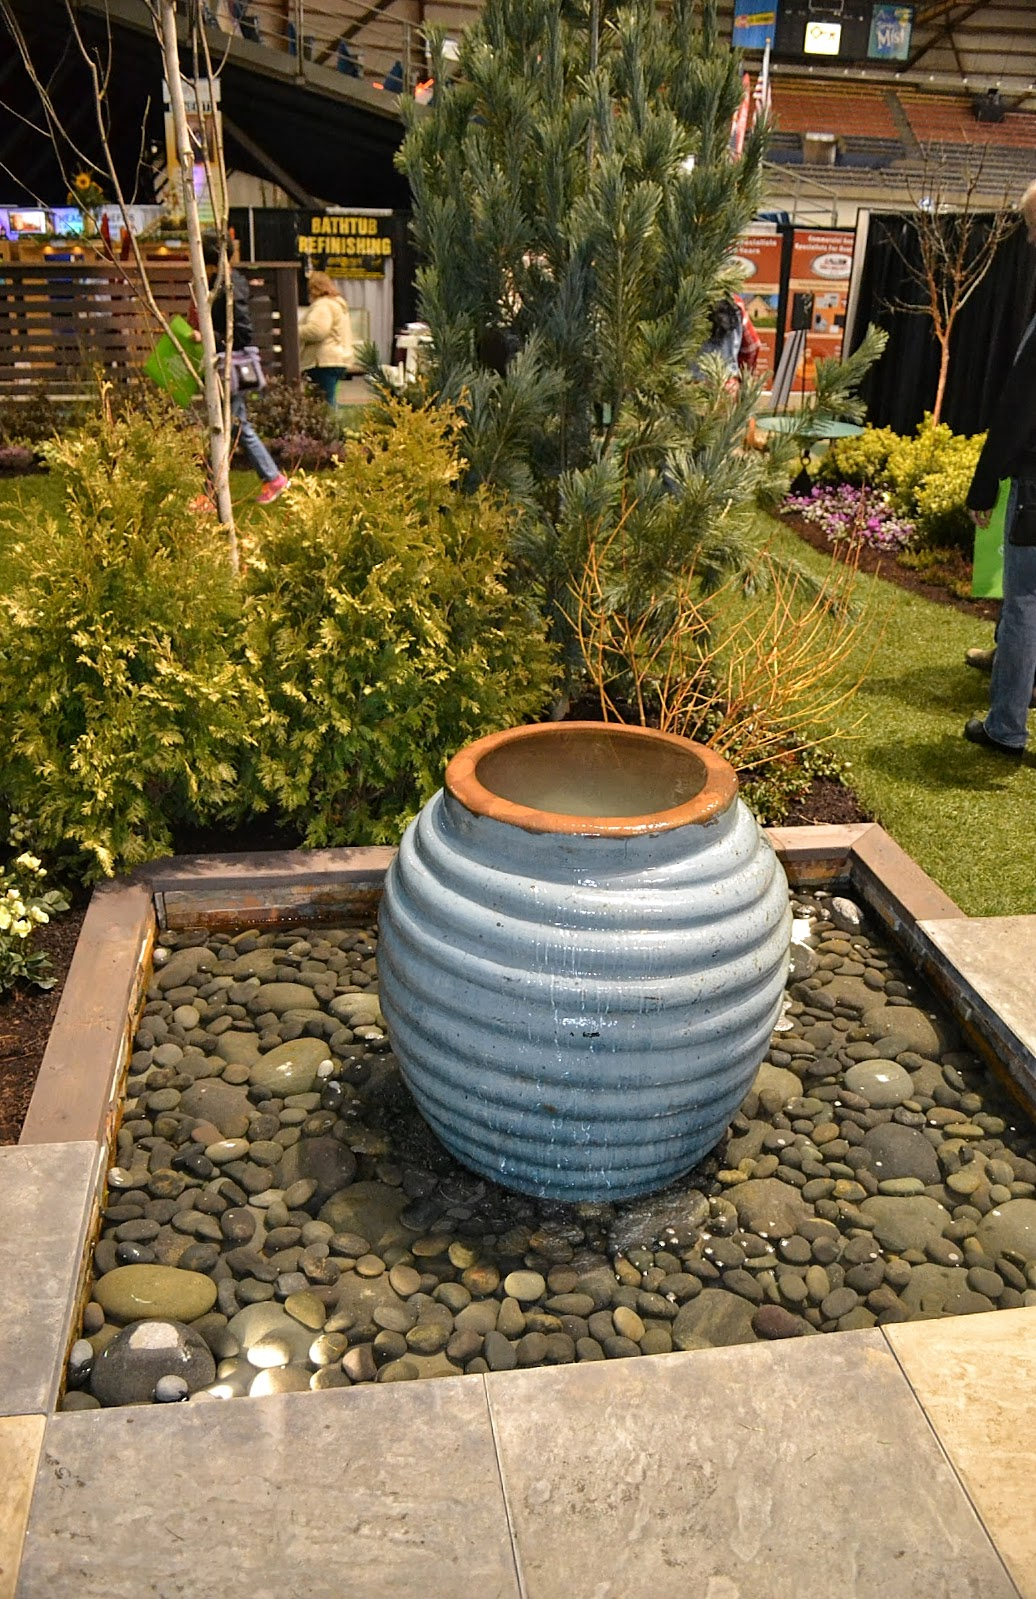 The Outlaw Gardener: The Tacoma Home and Garden Show Part One